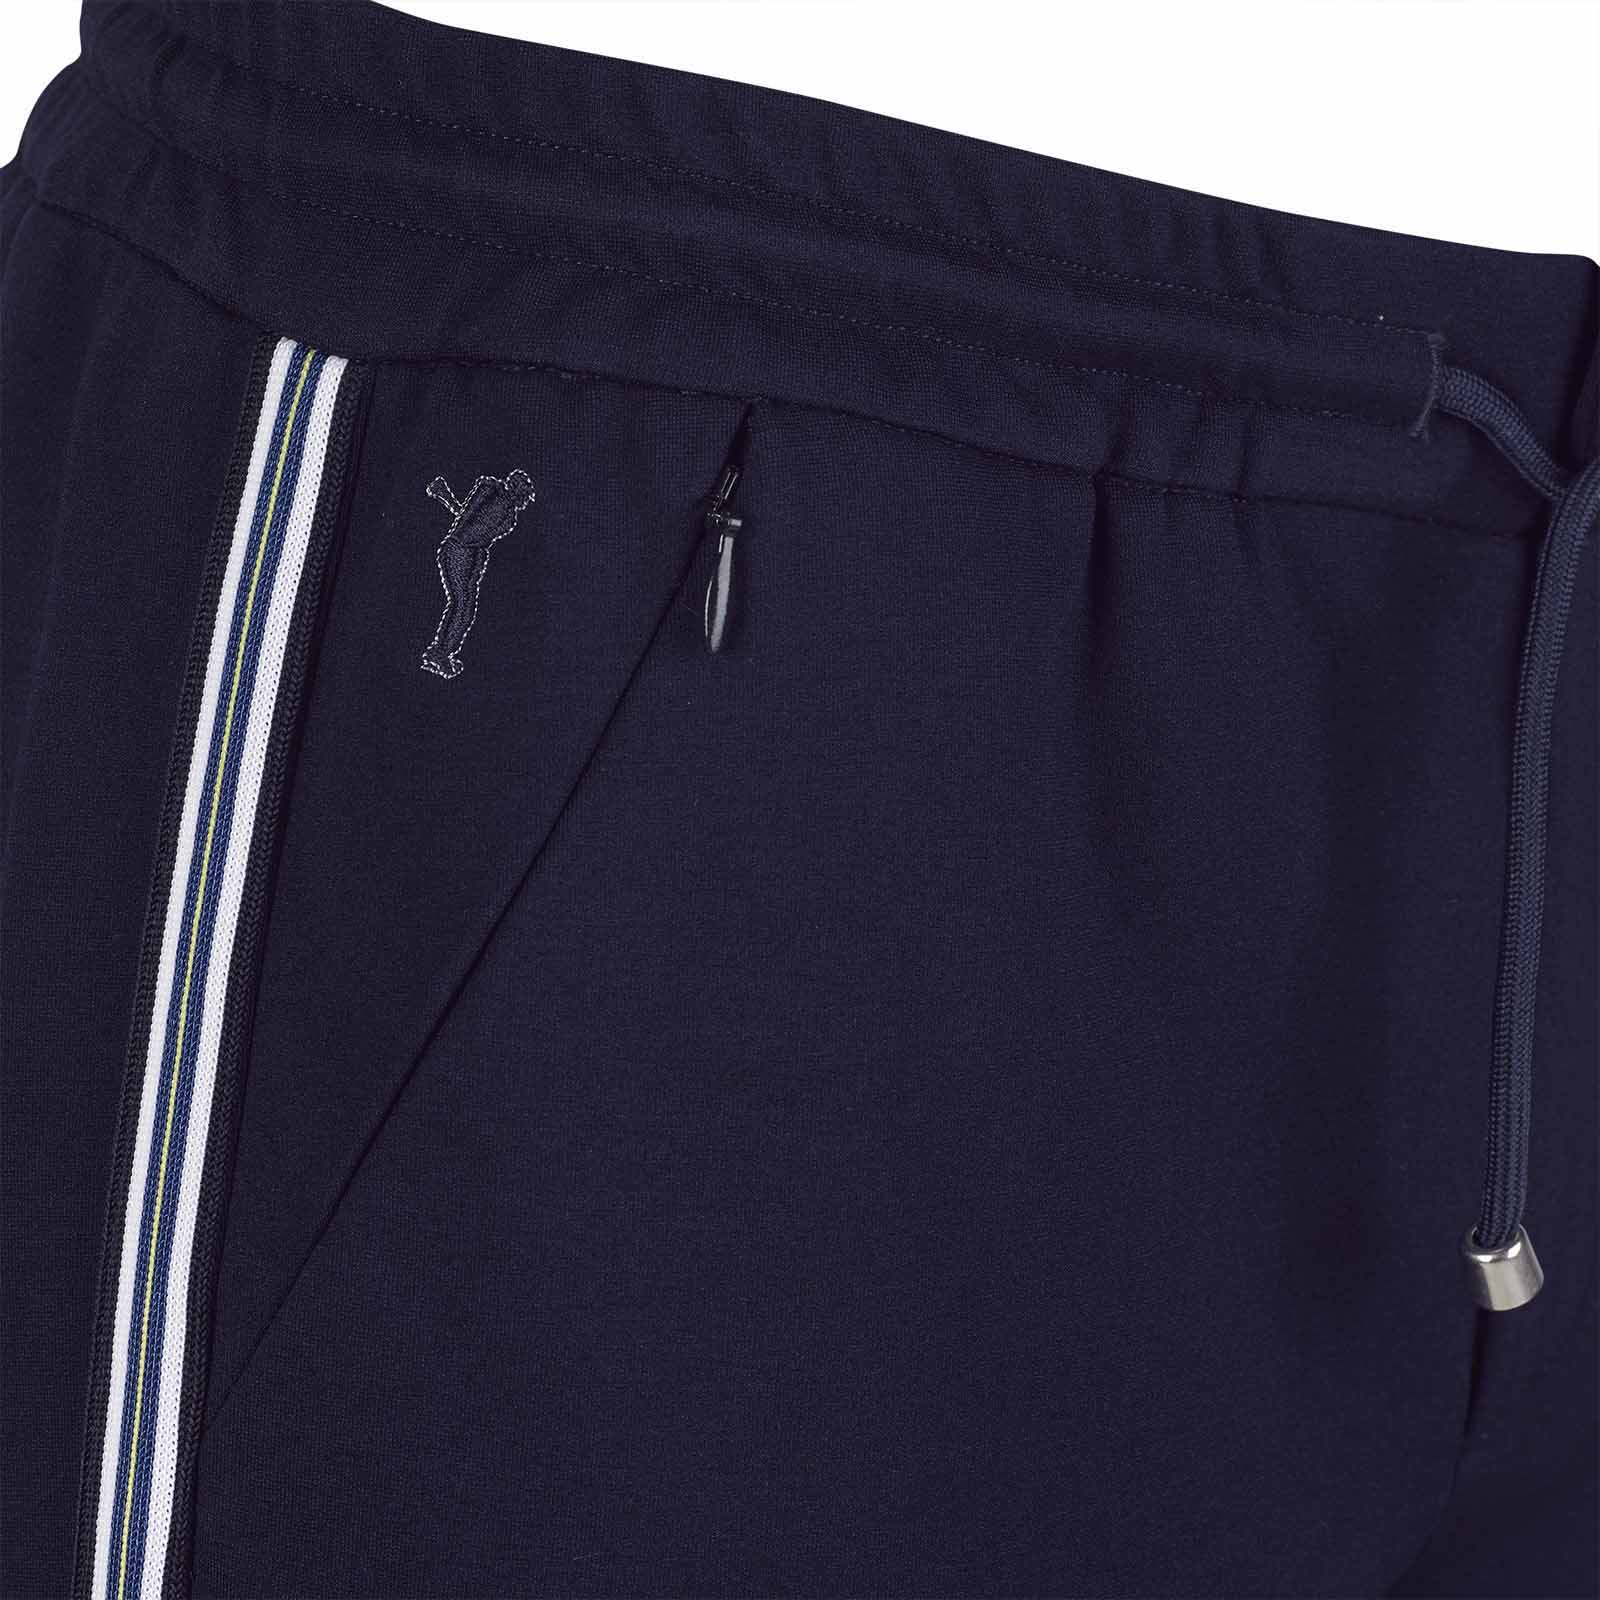 Damen Golfhose mit Extra Stretch Komfort in Regular Fit